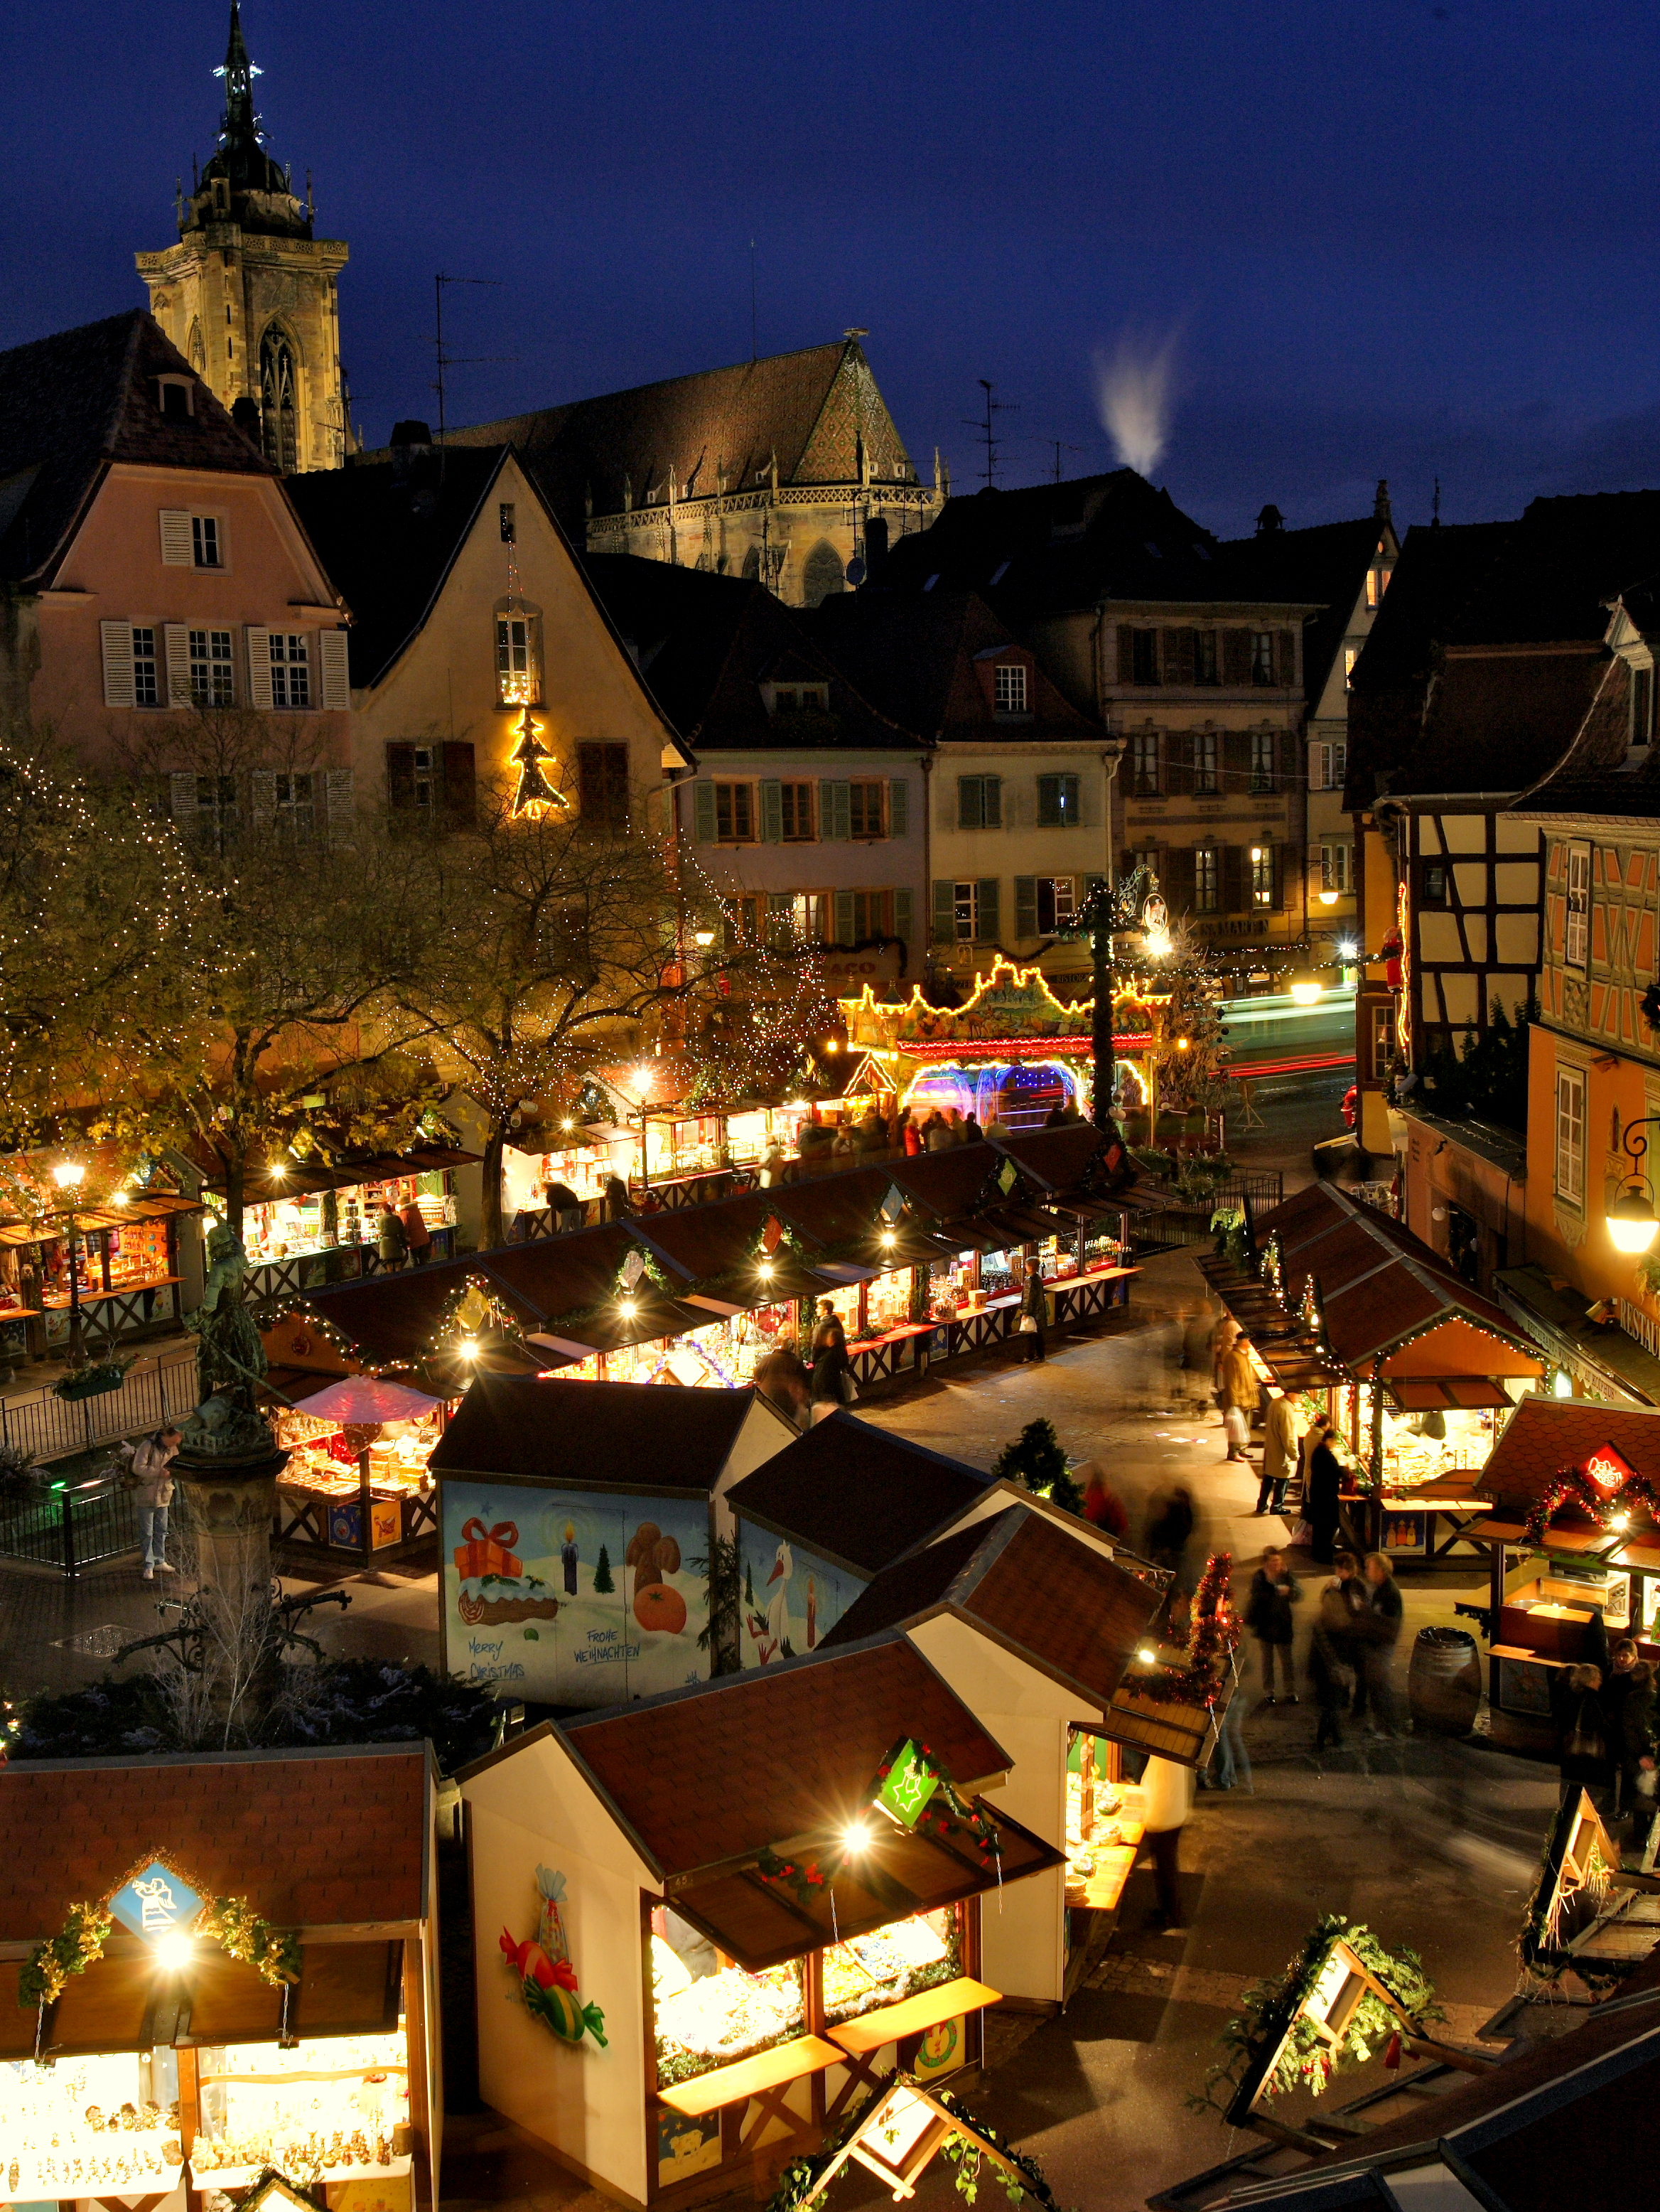 Le traditionnel marché de Noël de Colmar | French Moments Blog